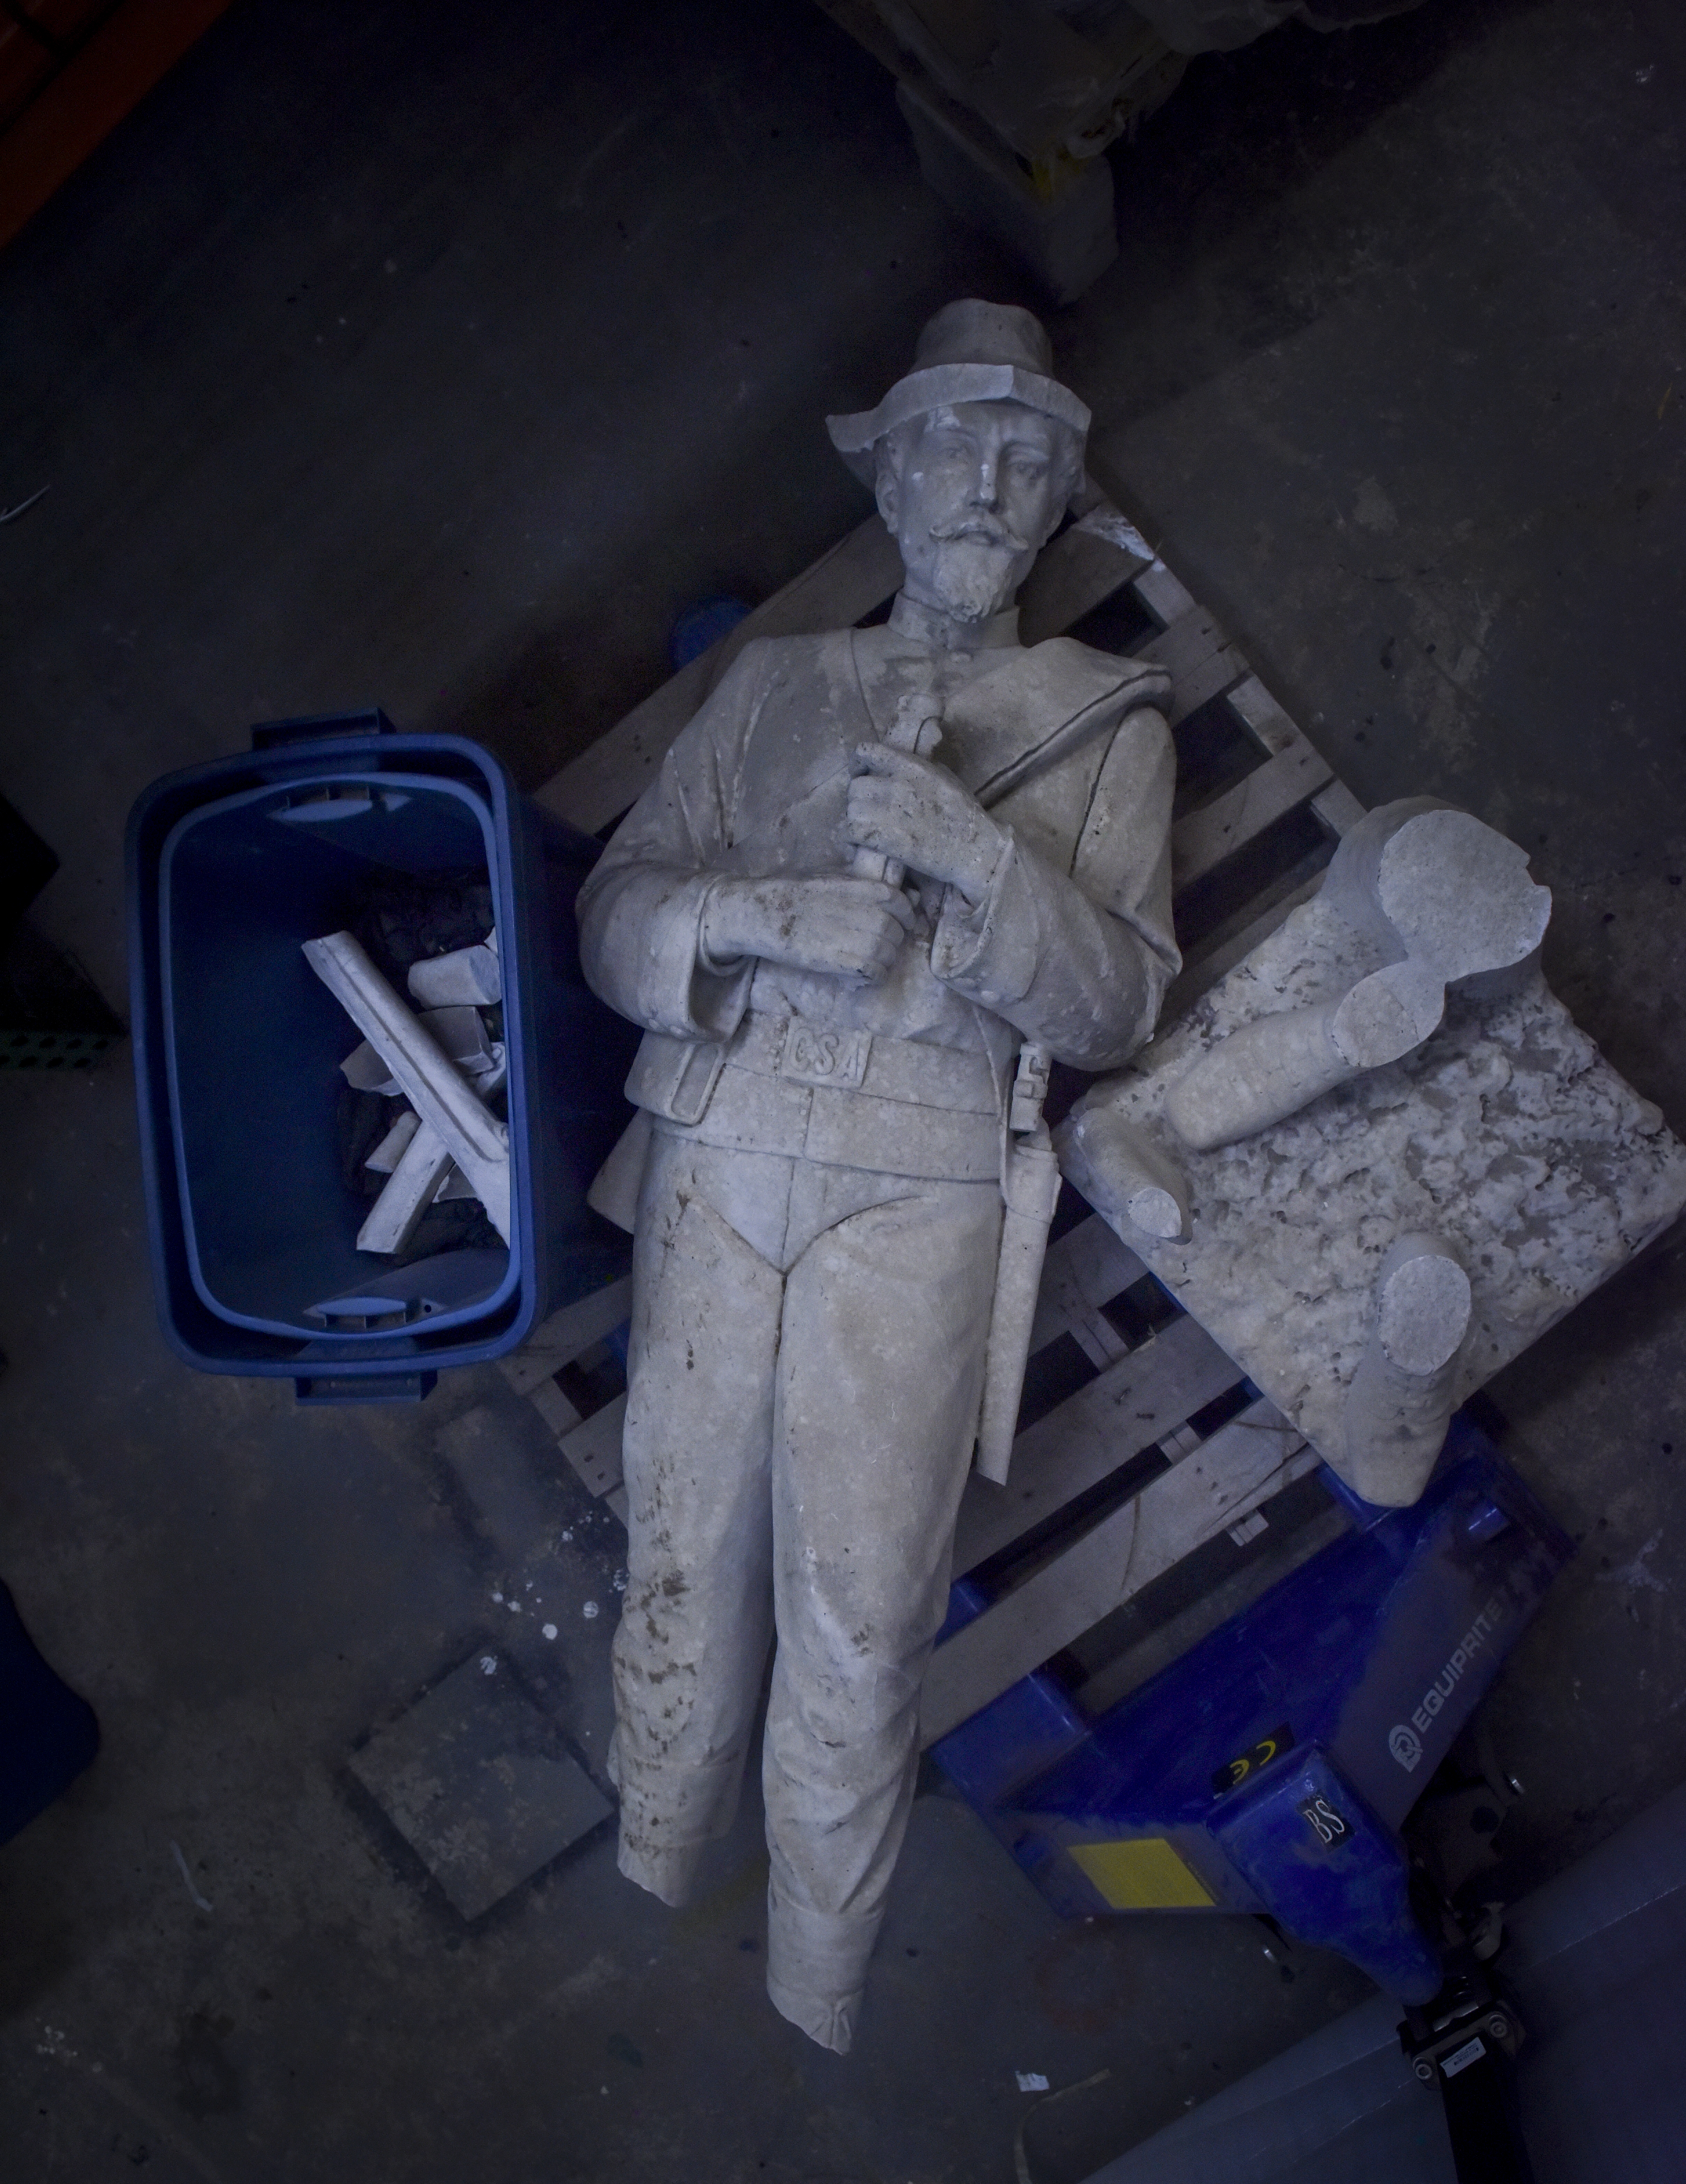 DEMOPOLIS, AL - JUNE 14: The marble statue of a Rebel soldier was unceremoniously toppled from the granite pedestal where he had presided since 1910, on Wednesday, June 14, 2017, in Demopolis, AL. About 3:30 a.m. on Saturday, July 16, 2016, an on-duty patrol car with the Demopolis, Ala., Police Department proceeded north on North Main Avenue to the intersection of West Capitol Street, where it crashed into the city's Confederate memorial. The impact of the Dodge Charger broke the statue off at the shins. Undamaged was the inscription on the base: